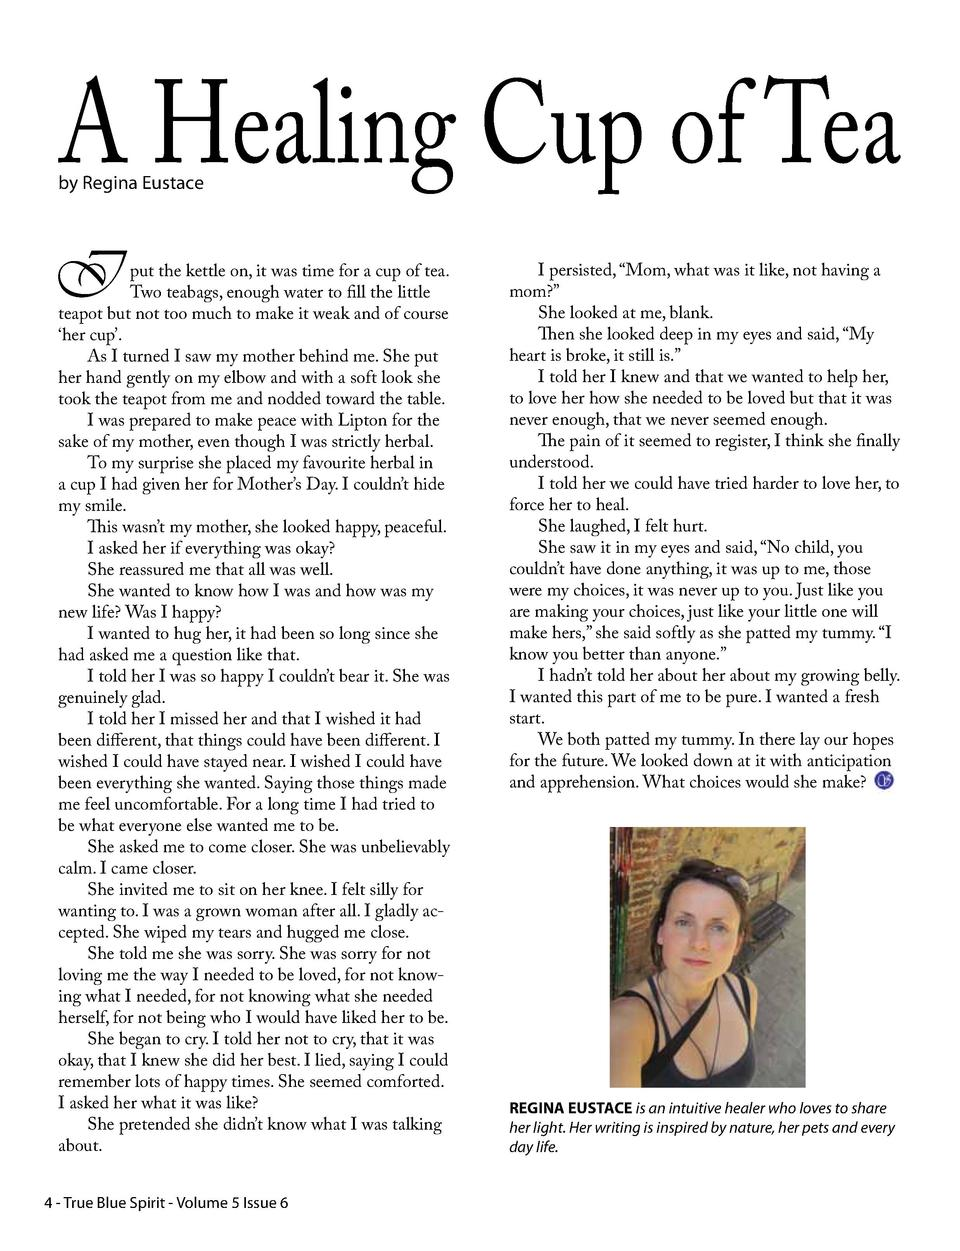 A Healing Cup of Tea by Regina Eustace  I  put the kettle on, it was time for a cup of tea. Two teabags, enough water to f...